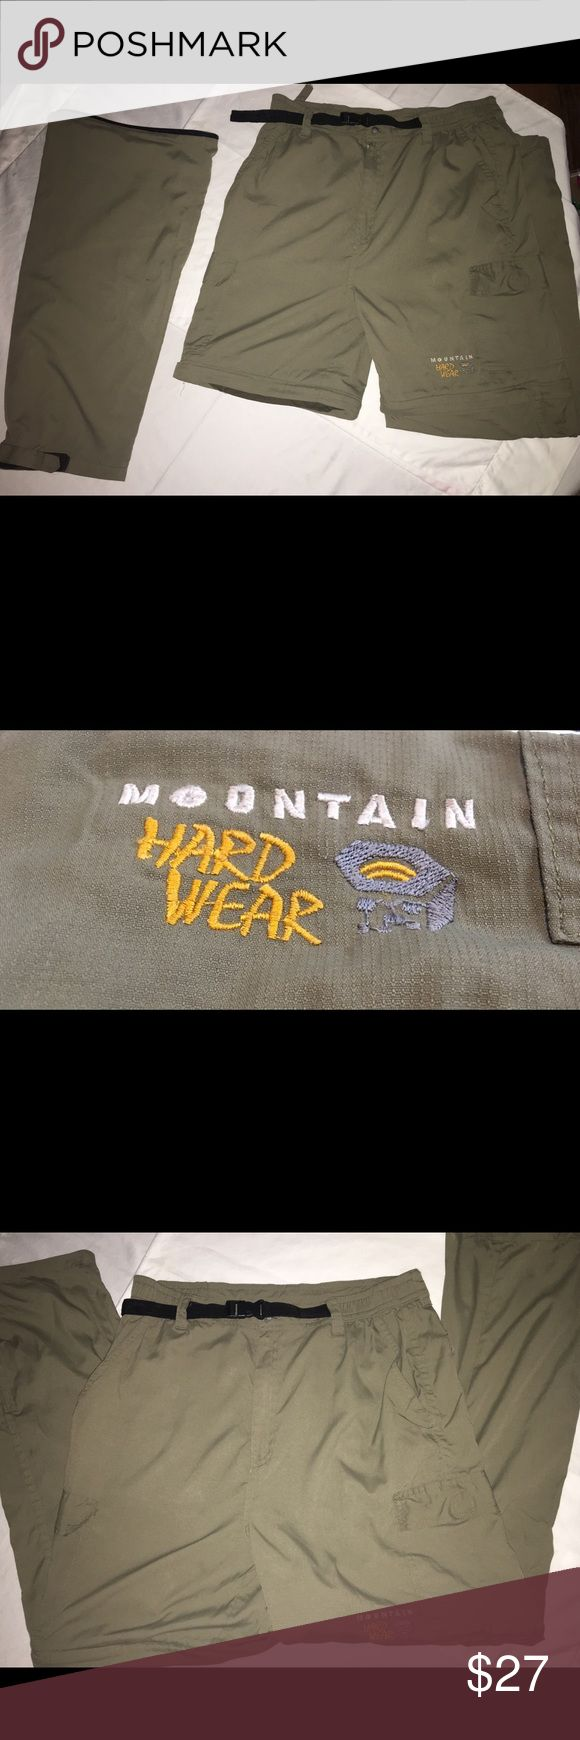 Mountain Hardwear  pants unzip to shorts size LG These are the best hiking pants you can find.  Generous Limited lifetime warranty.  Size large but measures 30WX29L These have an elastic waist, numerous deep pockets, and velcro closures on the cuffs. There are a few tiny spots on the pants that are quite unnoticeable unless you are really searching for blemishes.   The best part of  these pants is the zip off  to shorts feature! Mountain Hardwear Pants